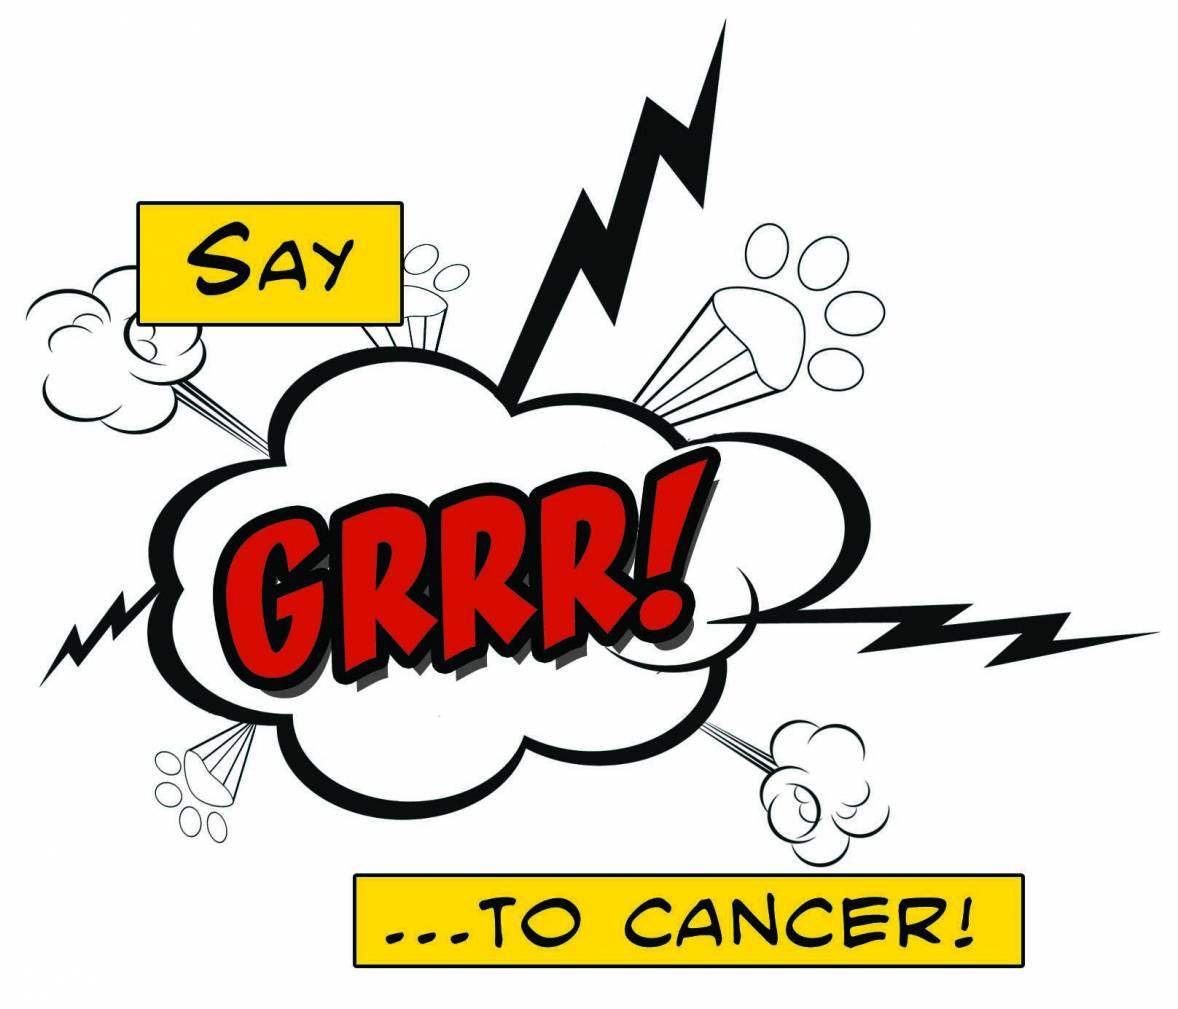 Say GRRR to Cancer!